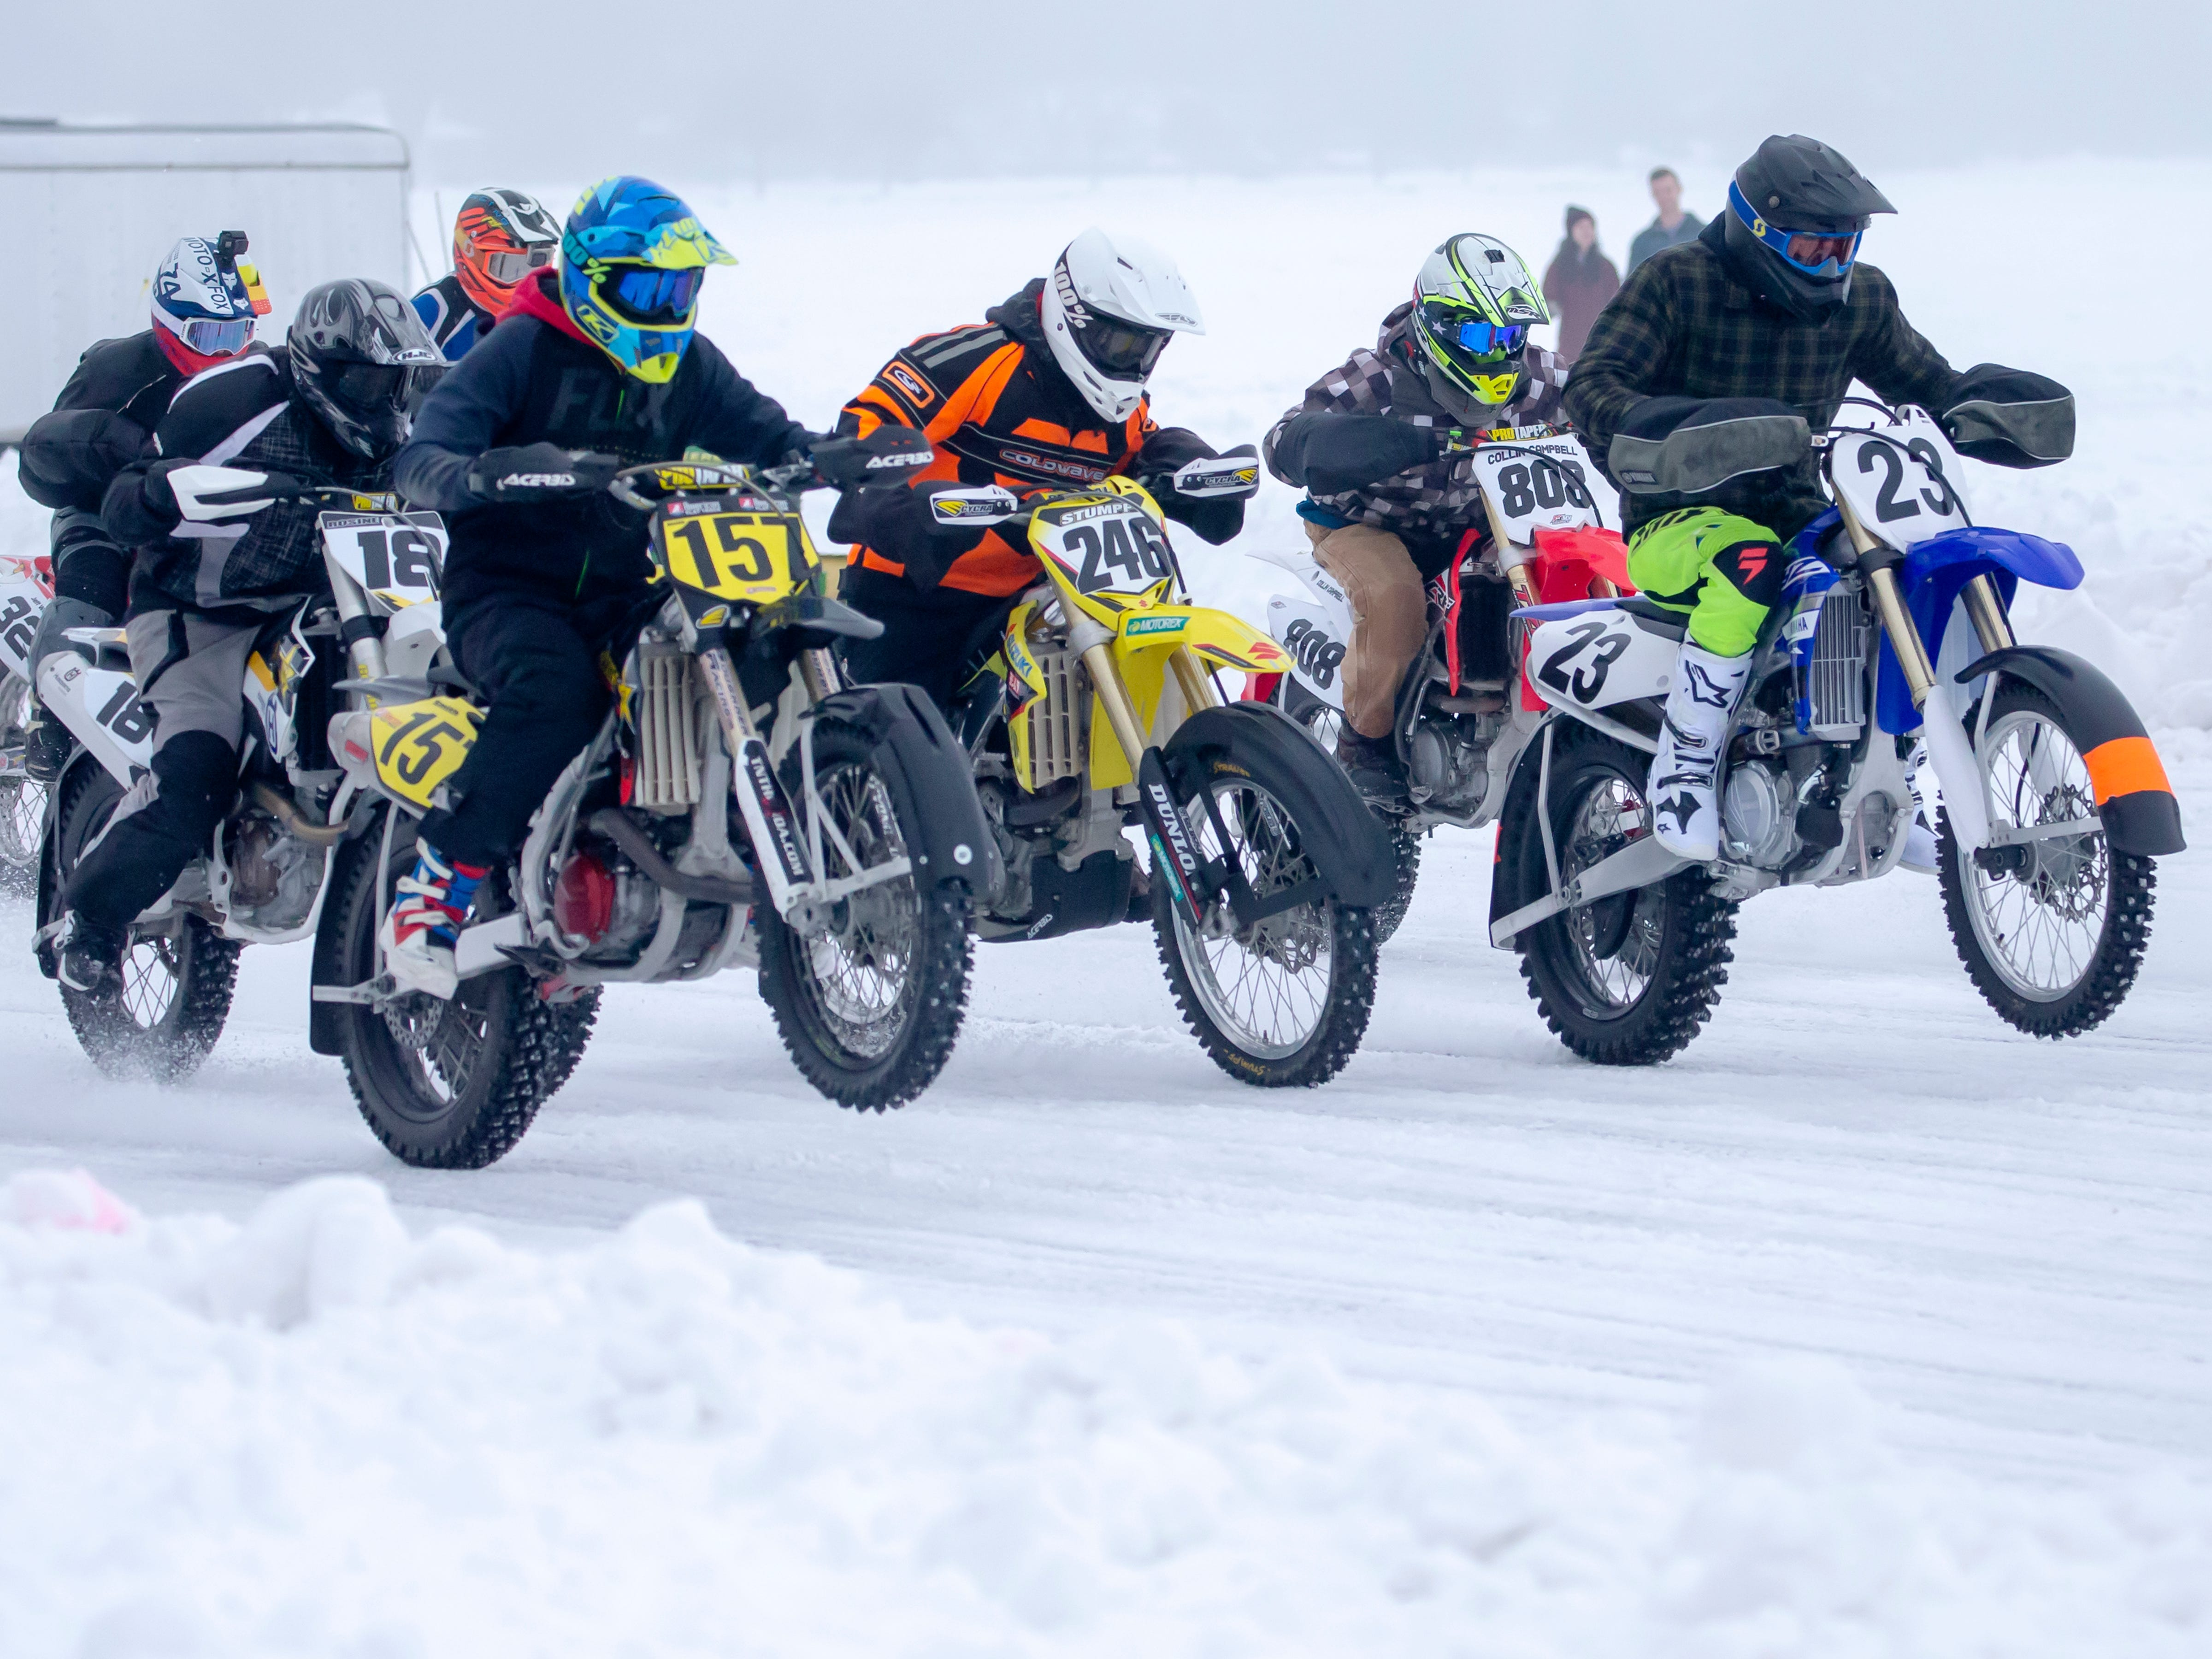 Jake Drummond (23) and other racers take off from the starting line racing during the Otter Street Fishing Club Winter Fisheree at Miller's Bay in Menominee Park on Saturday, Feb. 2, 2019.